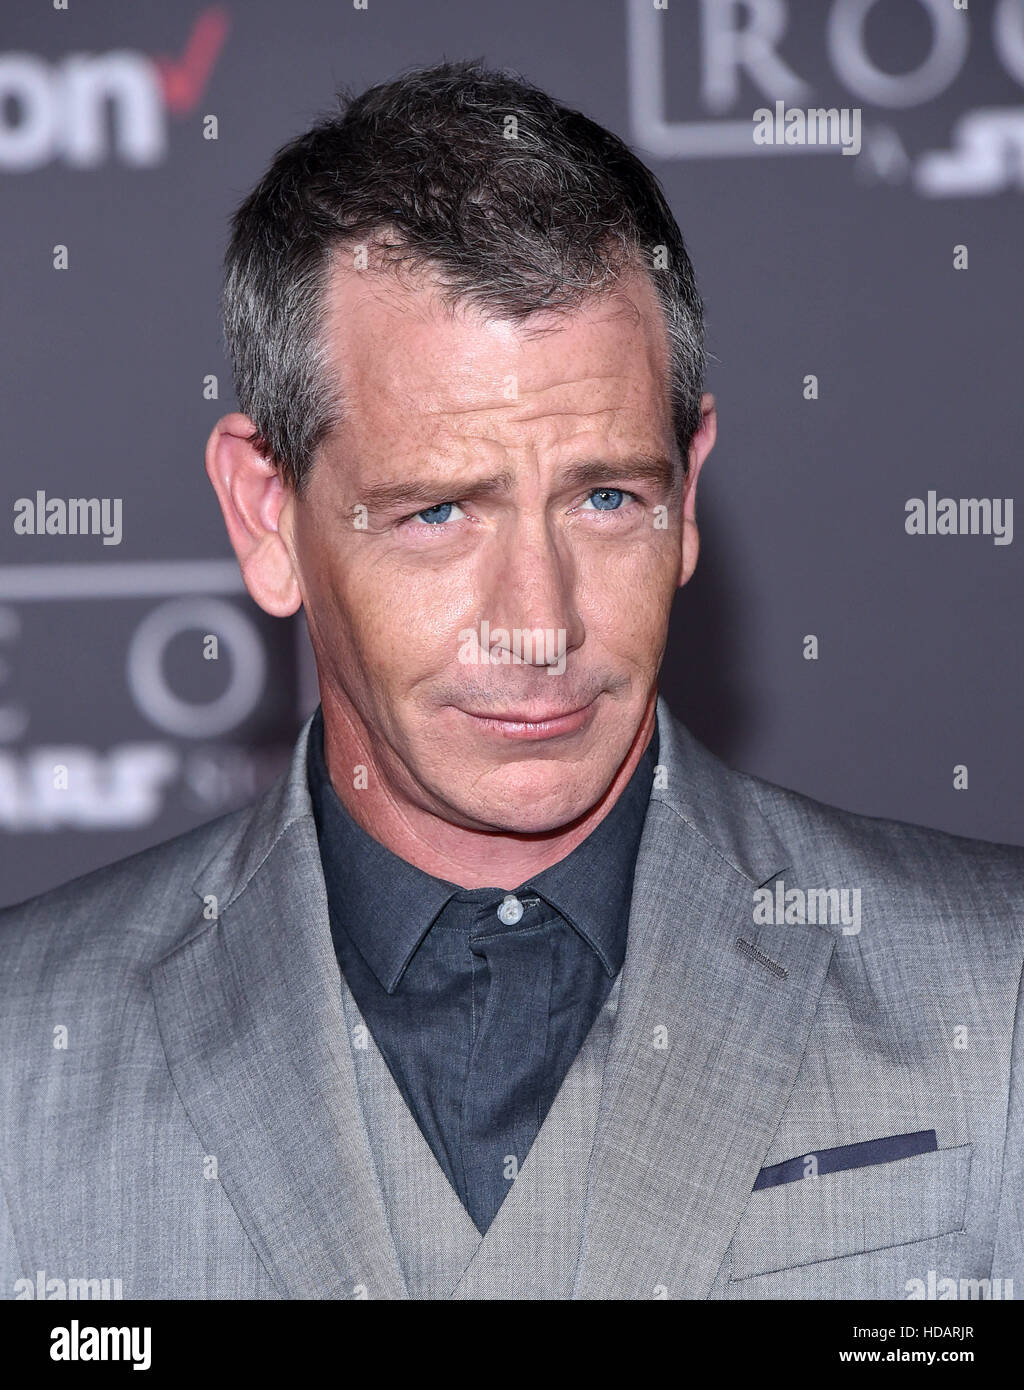 Hollywood, California, USA. Undicesimo Dec, 2016. Ben Mendelsohn arriva per la premiere del film 'Rogue uno: Immagini Stock